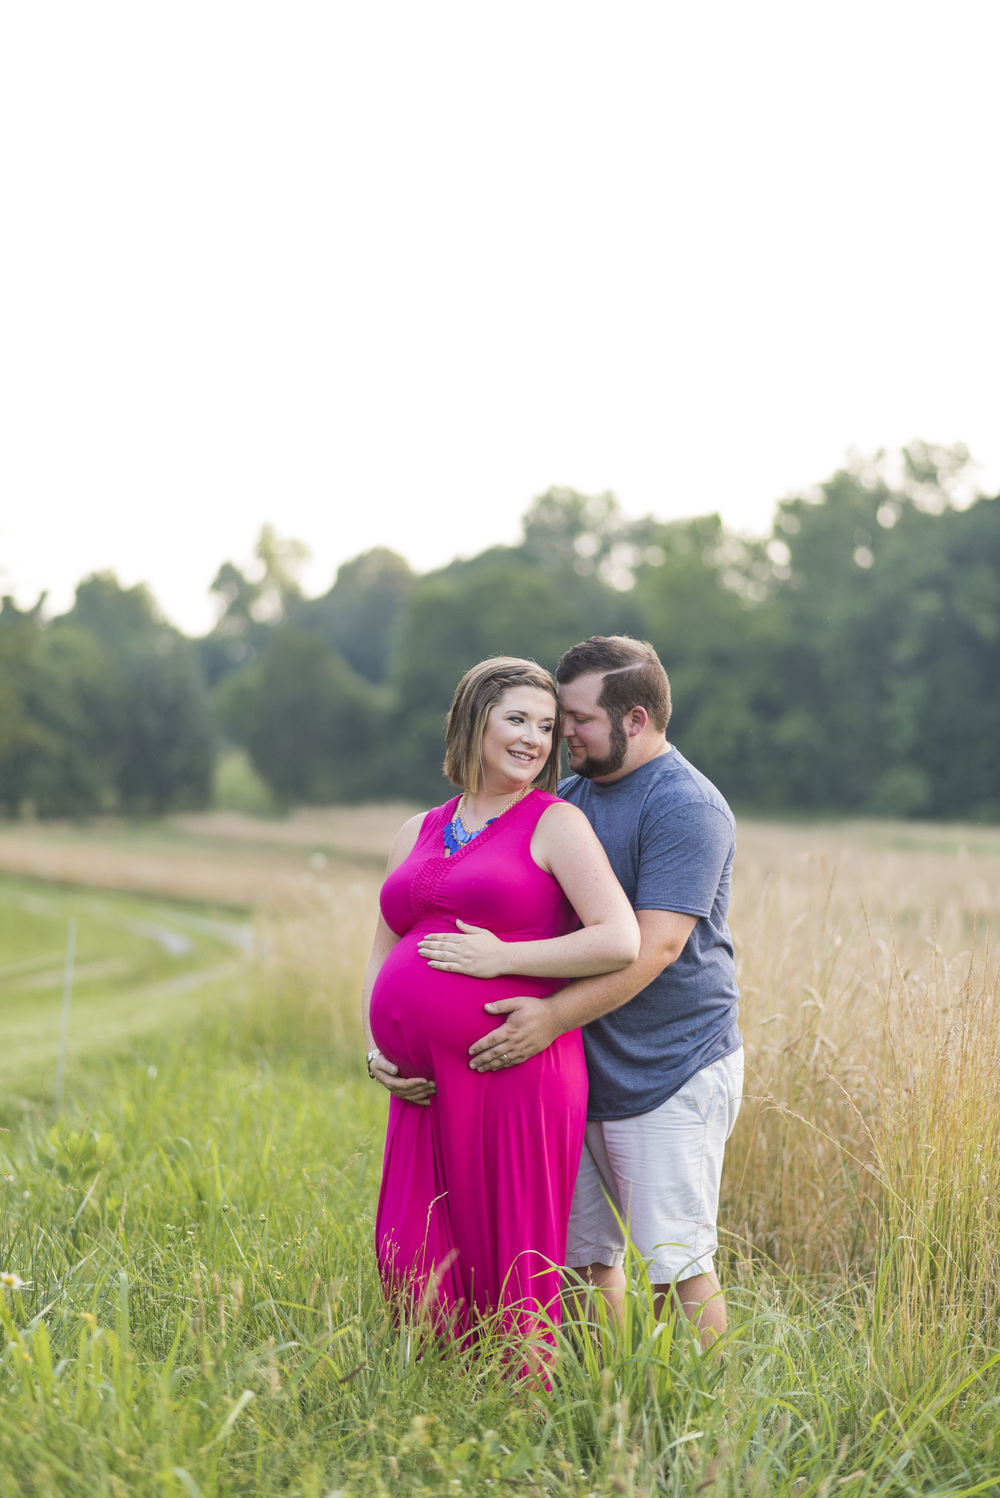 Maternity_Session_Water_Lynchburg_VA20150625_0042.jpg